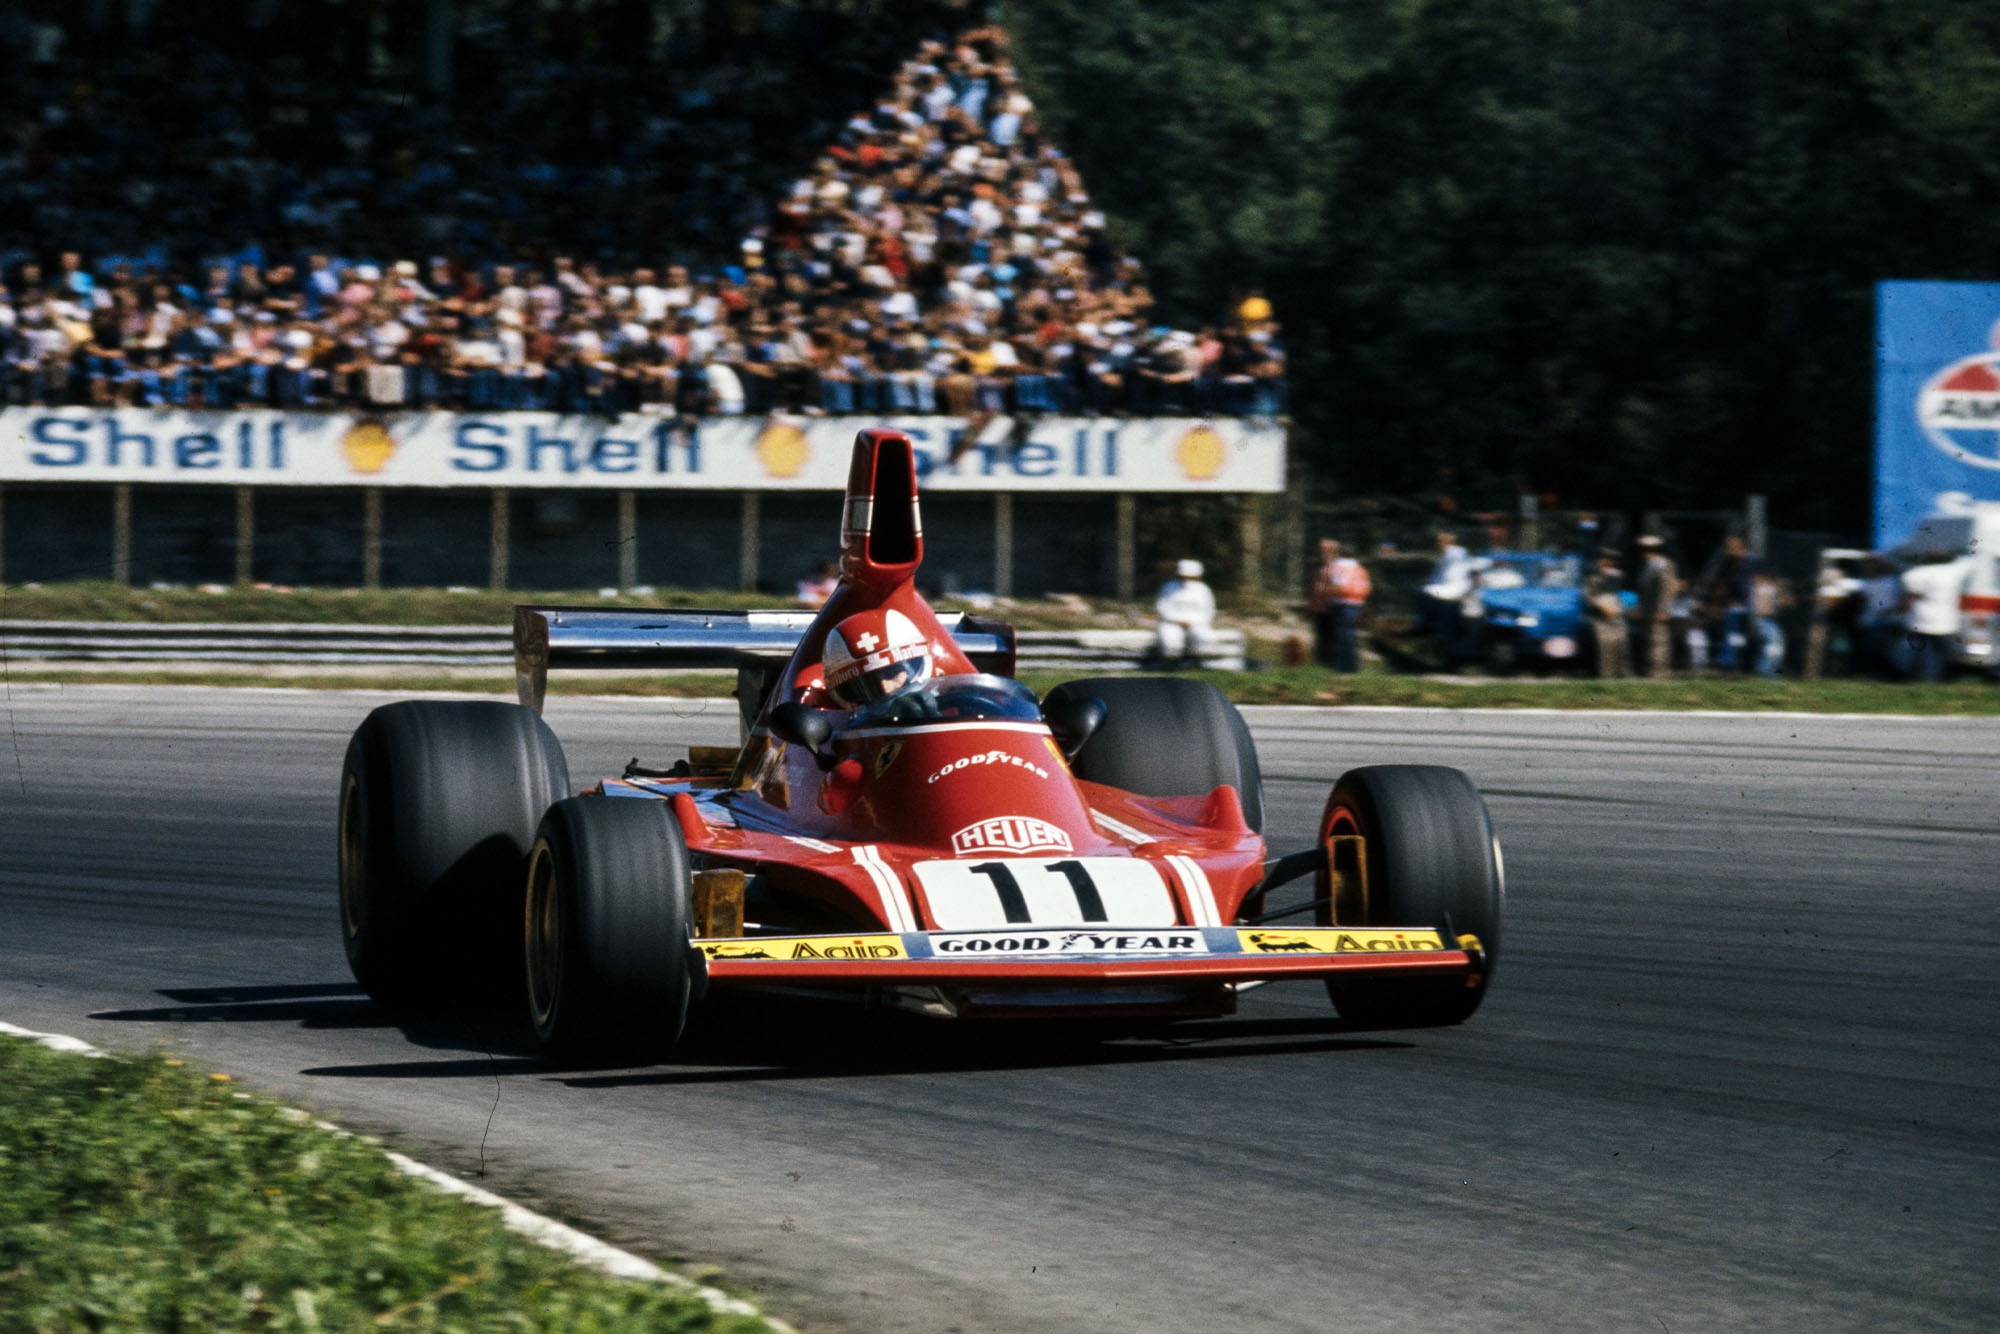 Clay Regazzoni driving for Ferrari at the 1974 Italian Grand Prix